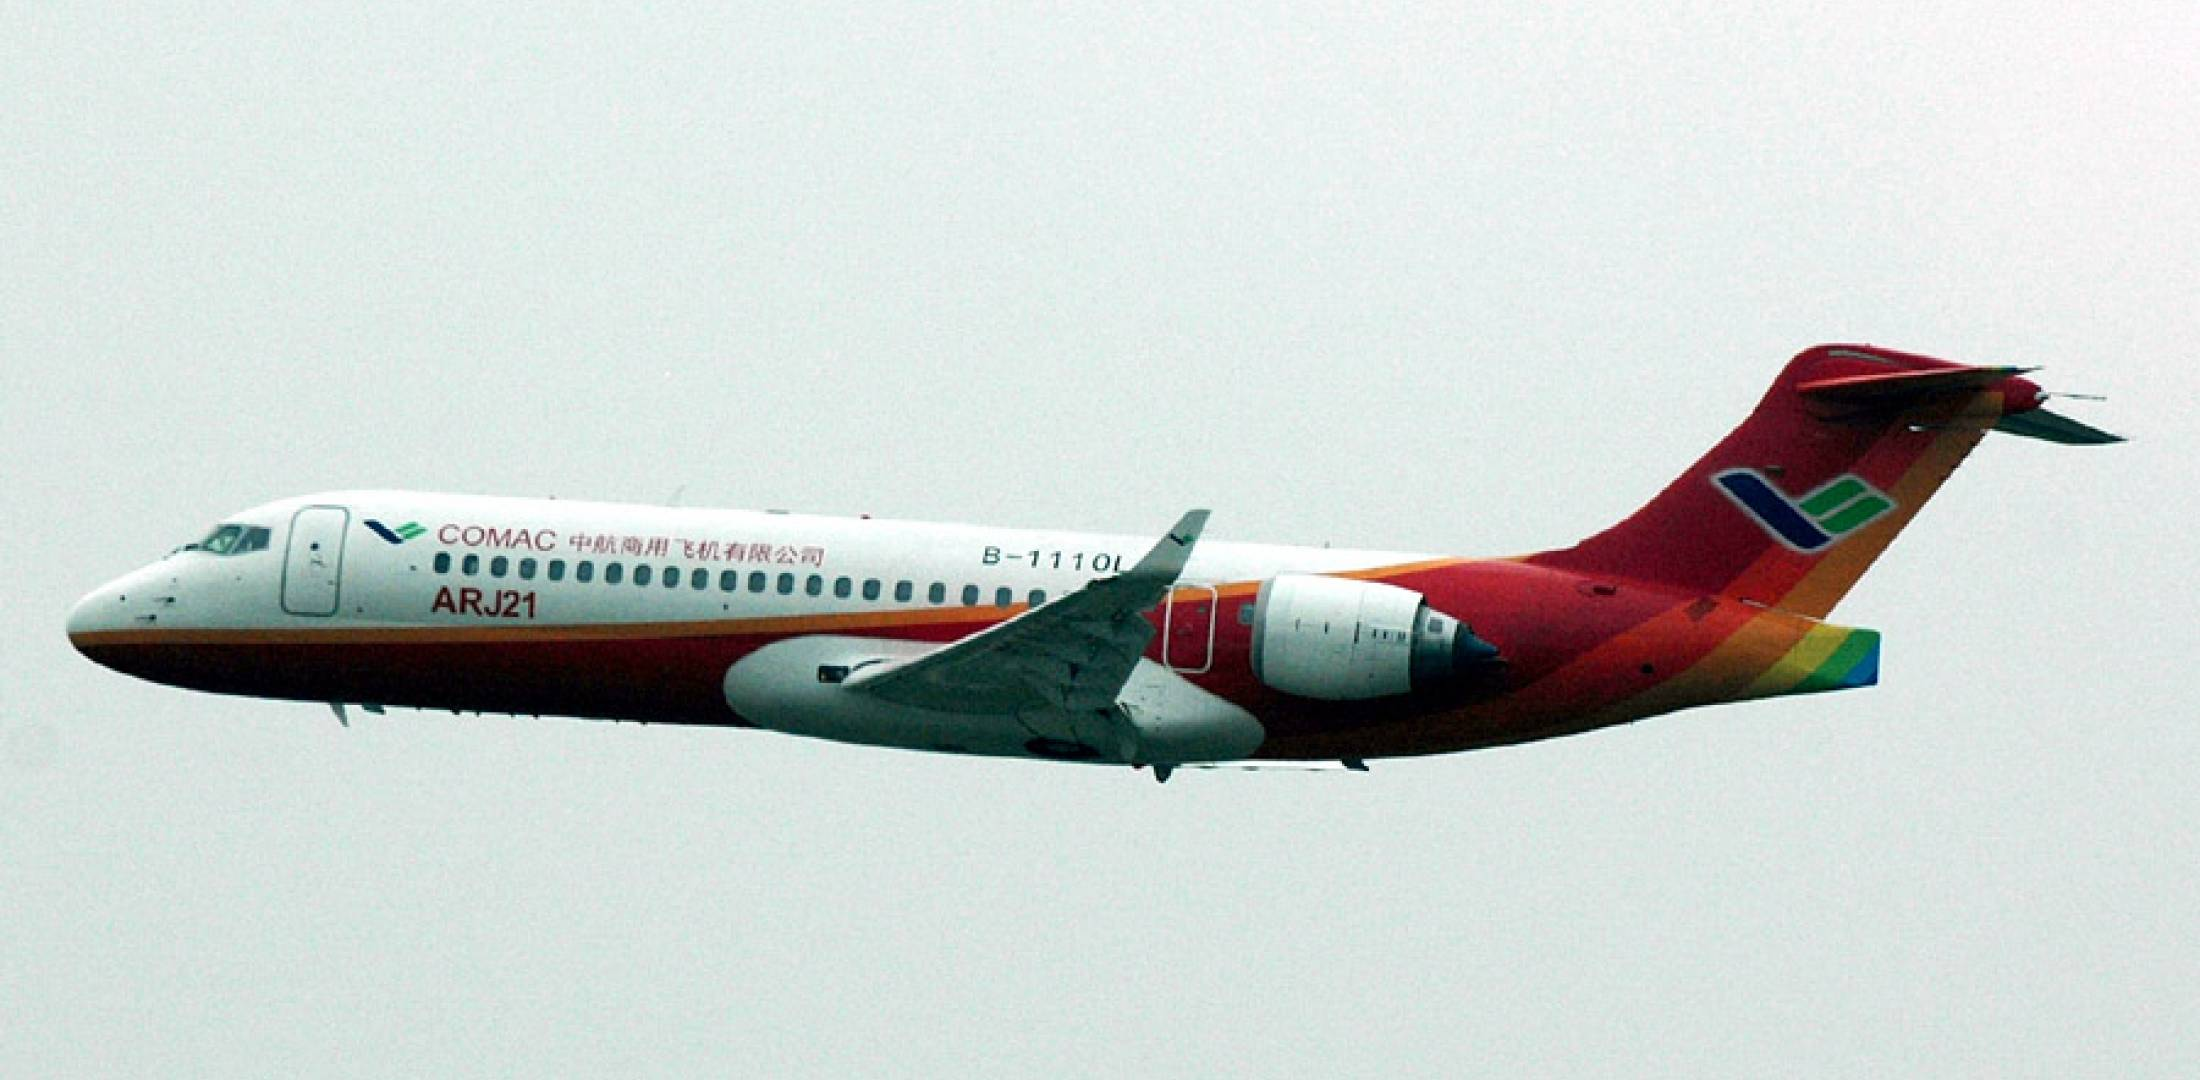 Comac's ARJ21 regional jet made its public flying debut at the China Internat...